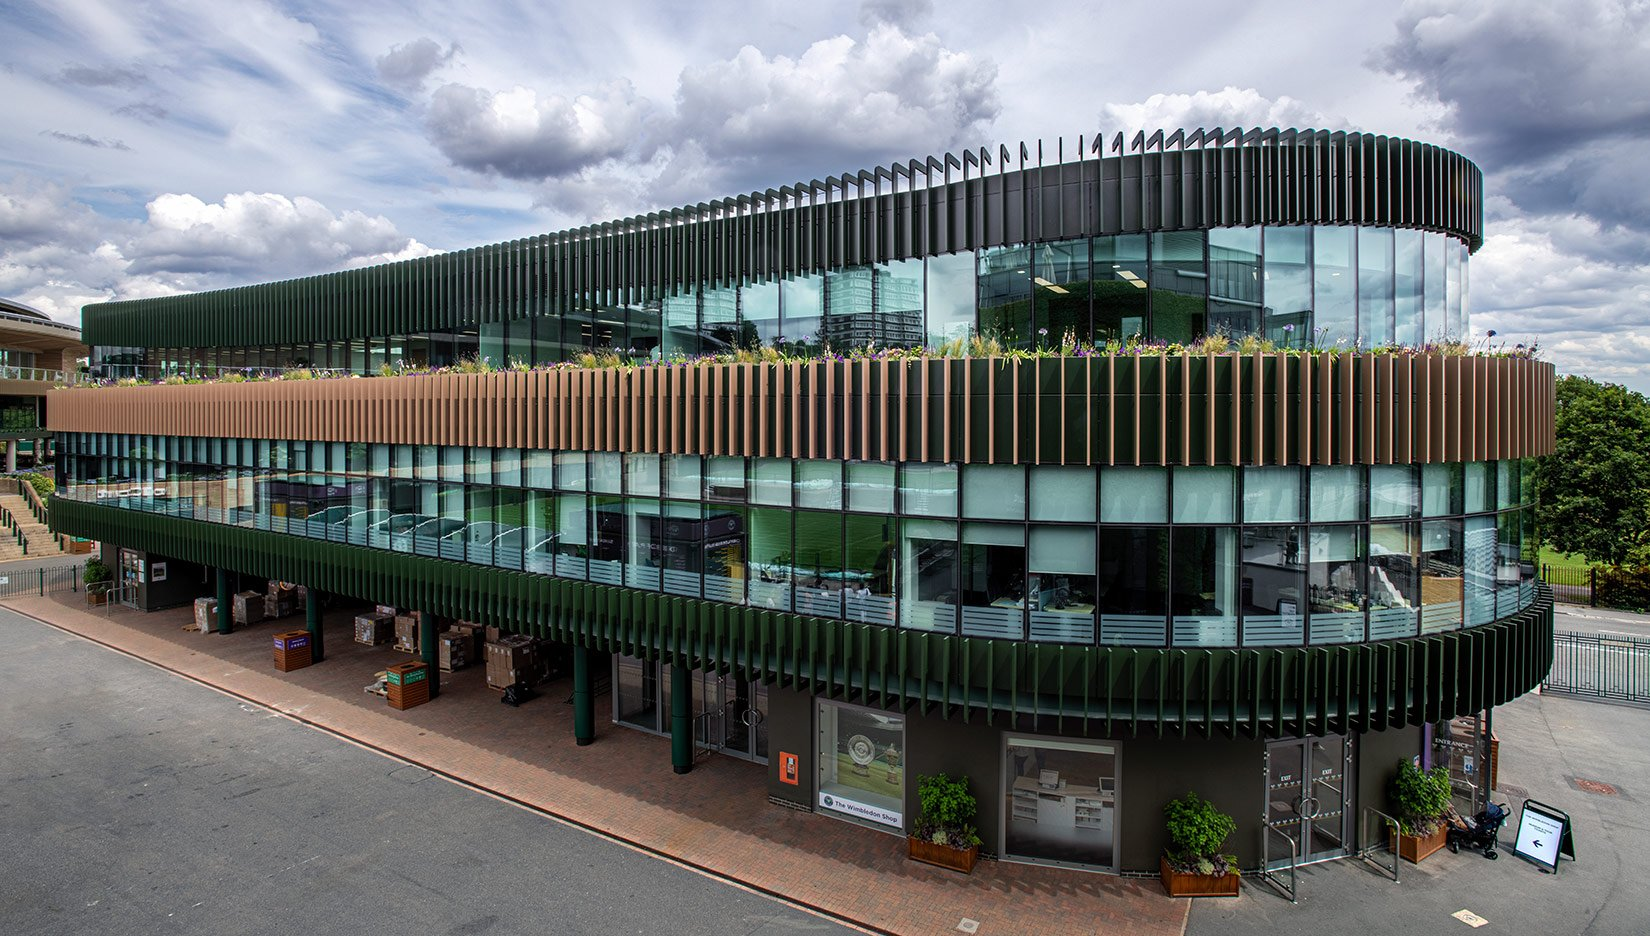 The Museum Building, AELTC, Wimbledon, entrance : Photograph by Tony MacLean, Image Works (London) Ltd